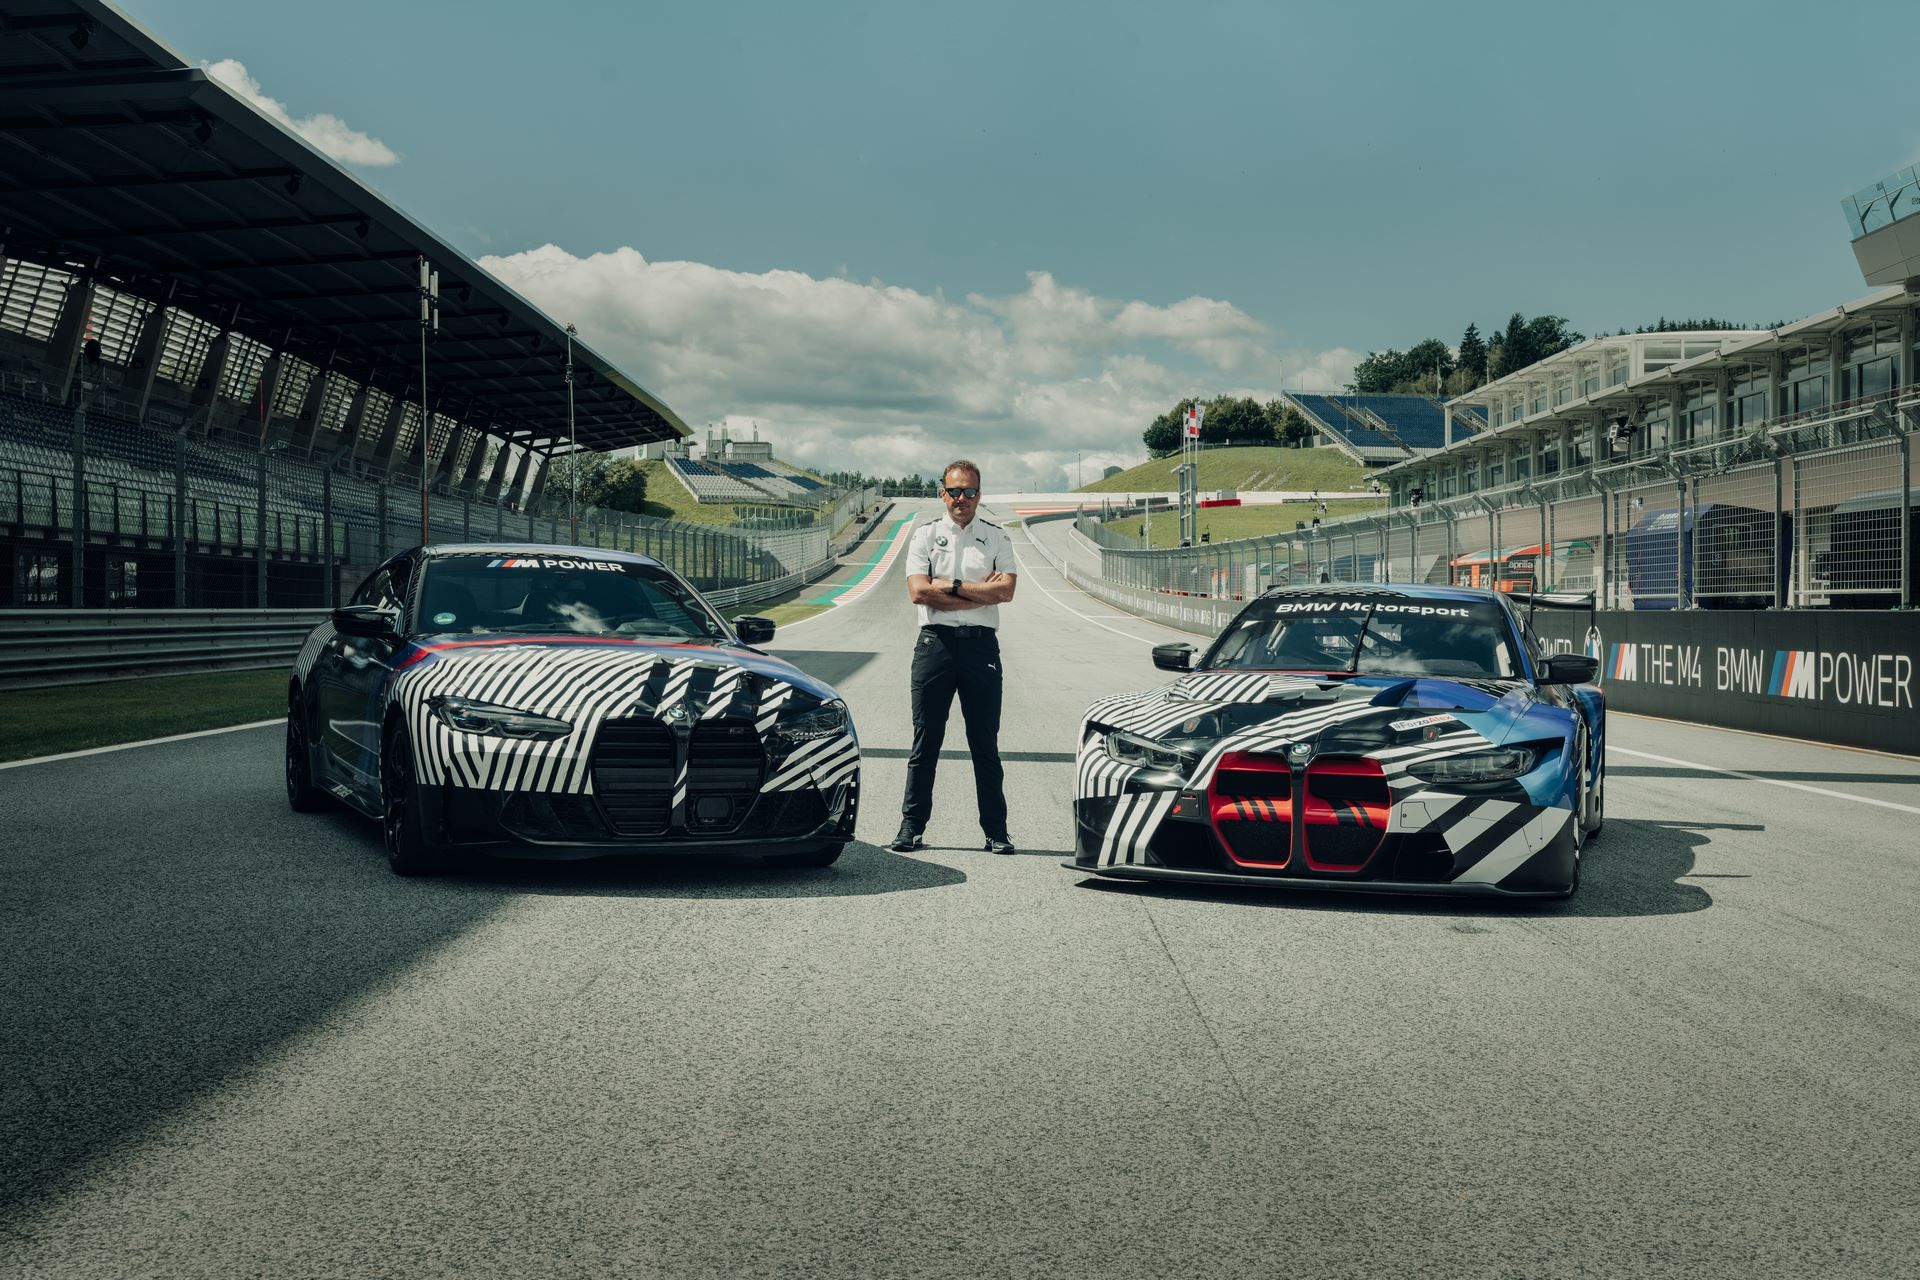 New-BMW-M4-Coupe-and-BMW-M4-GT3-prototypes-4